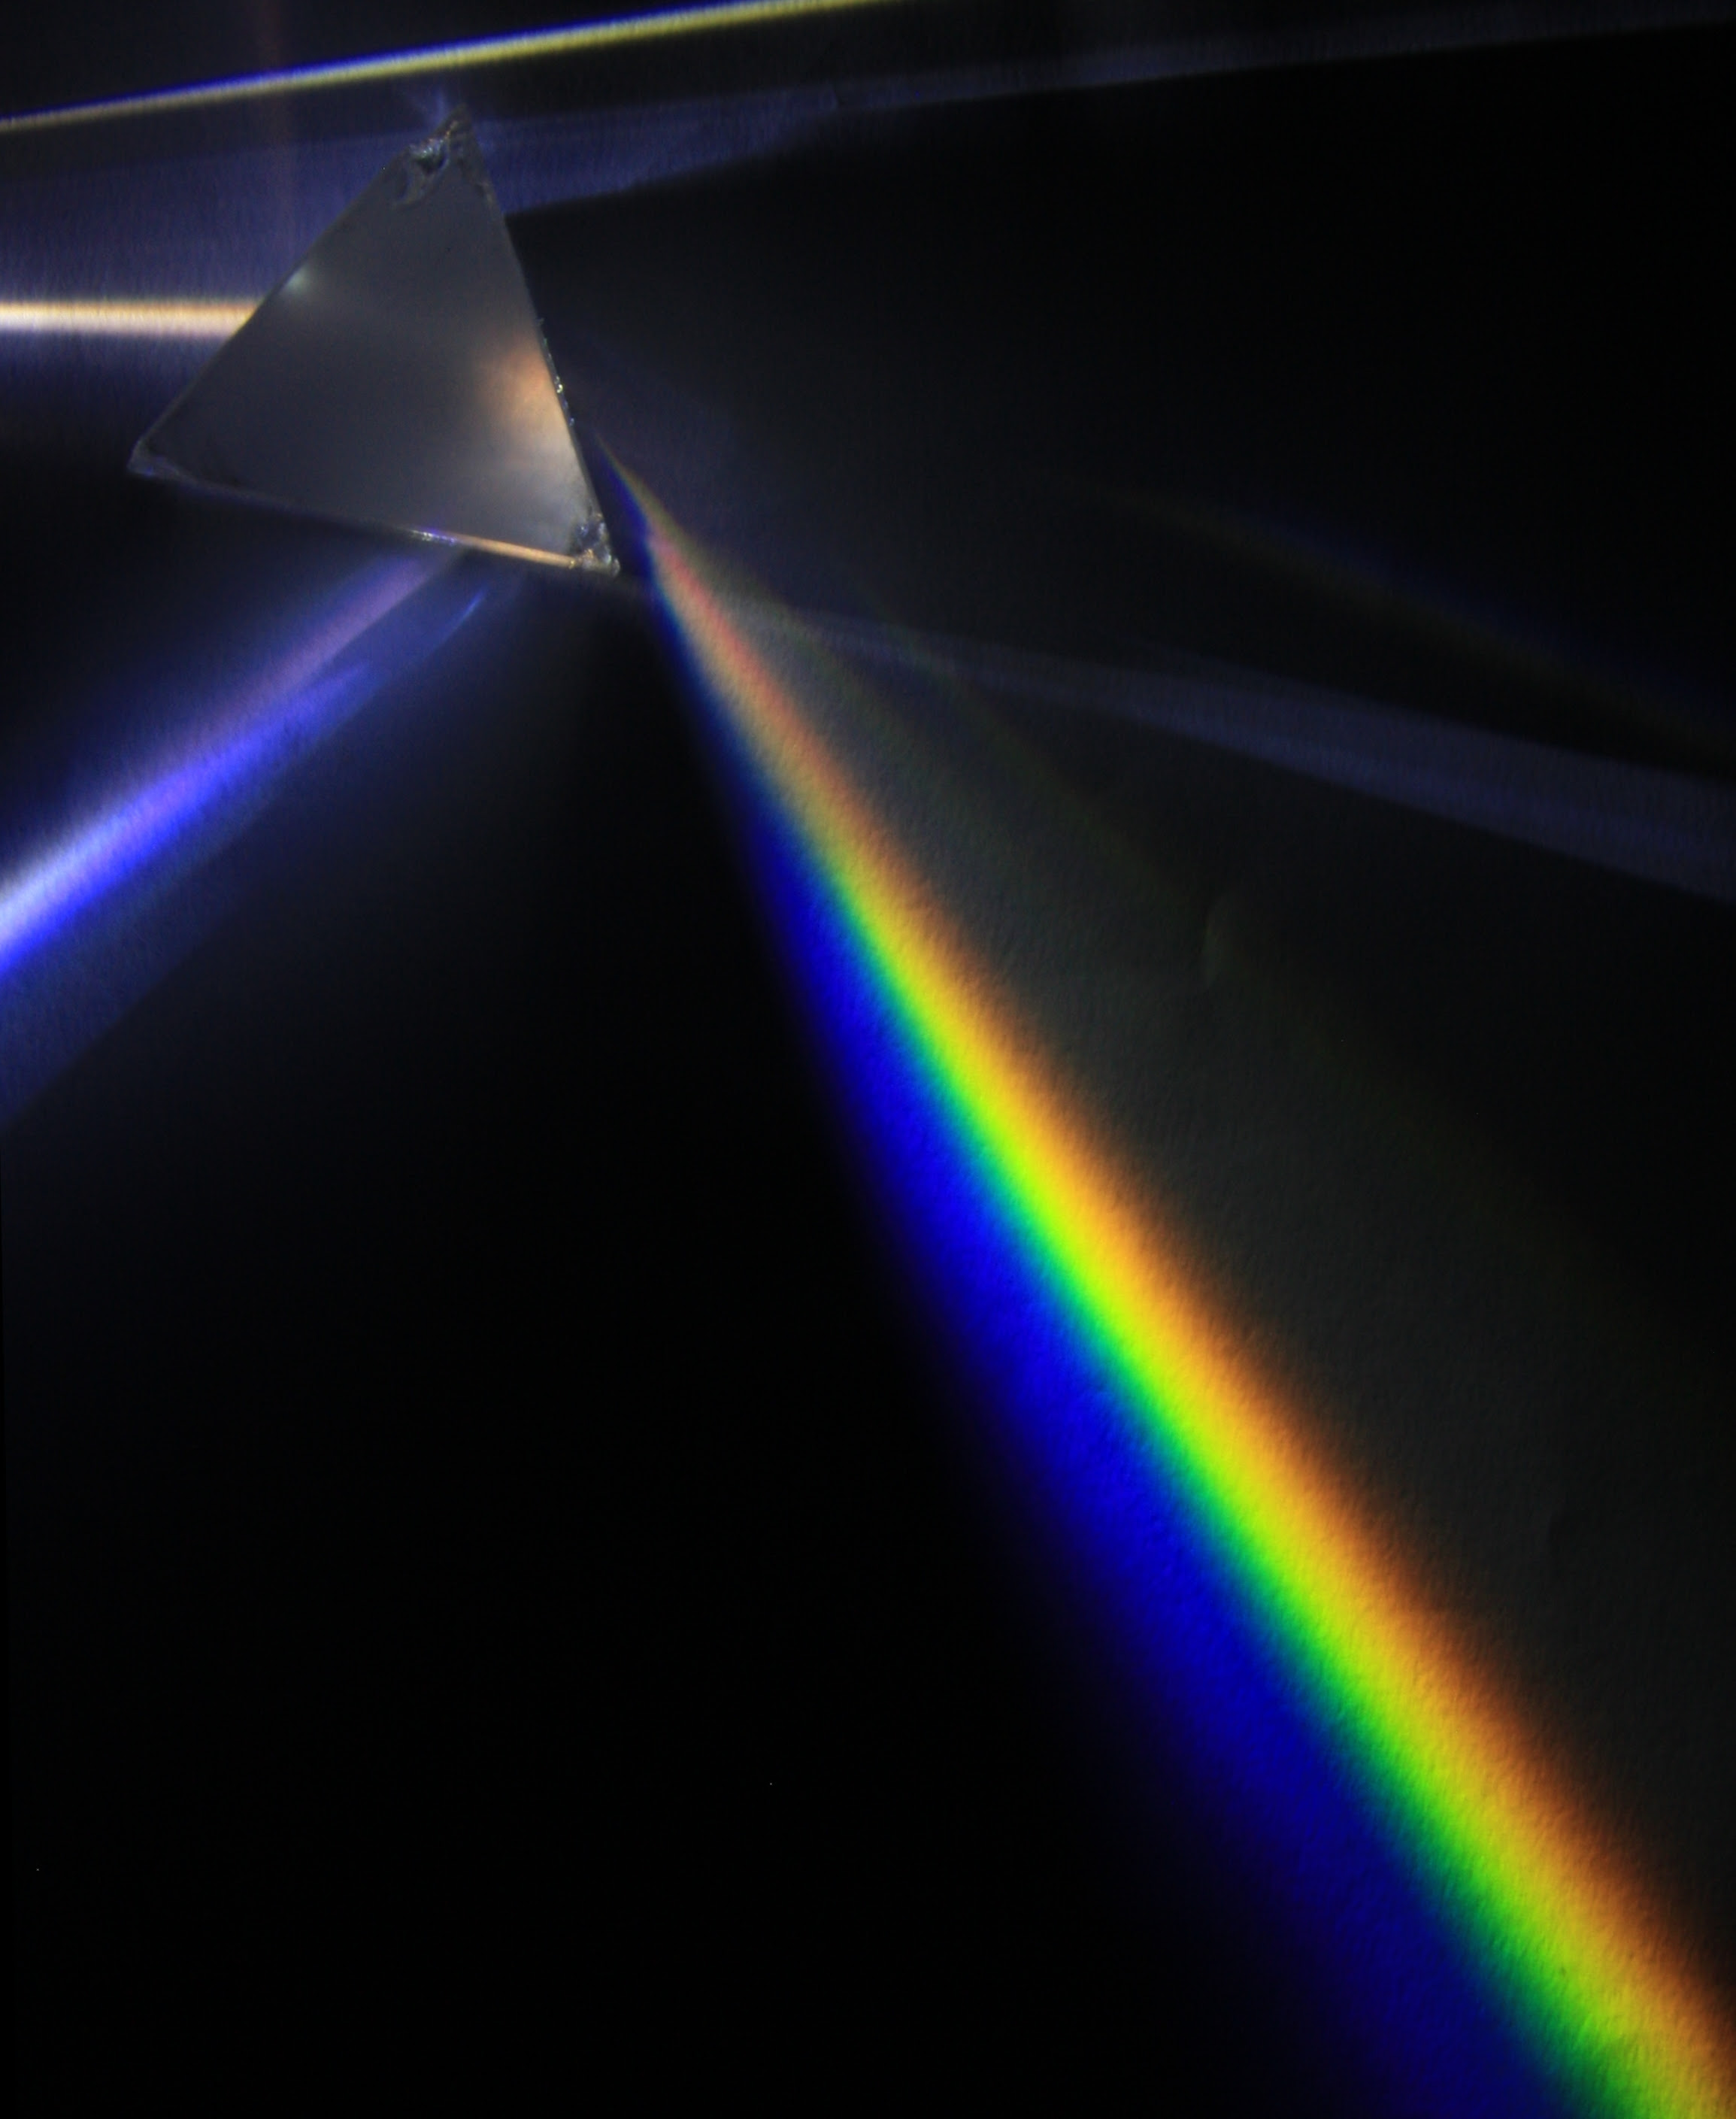 Light through a glass prism